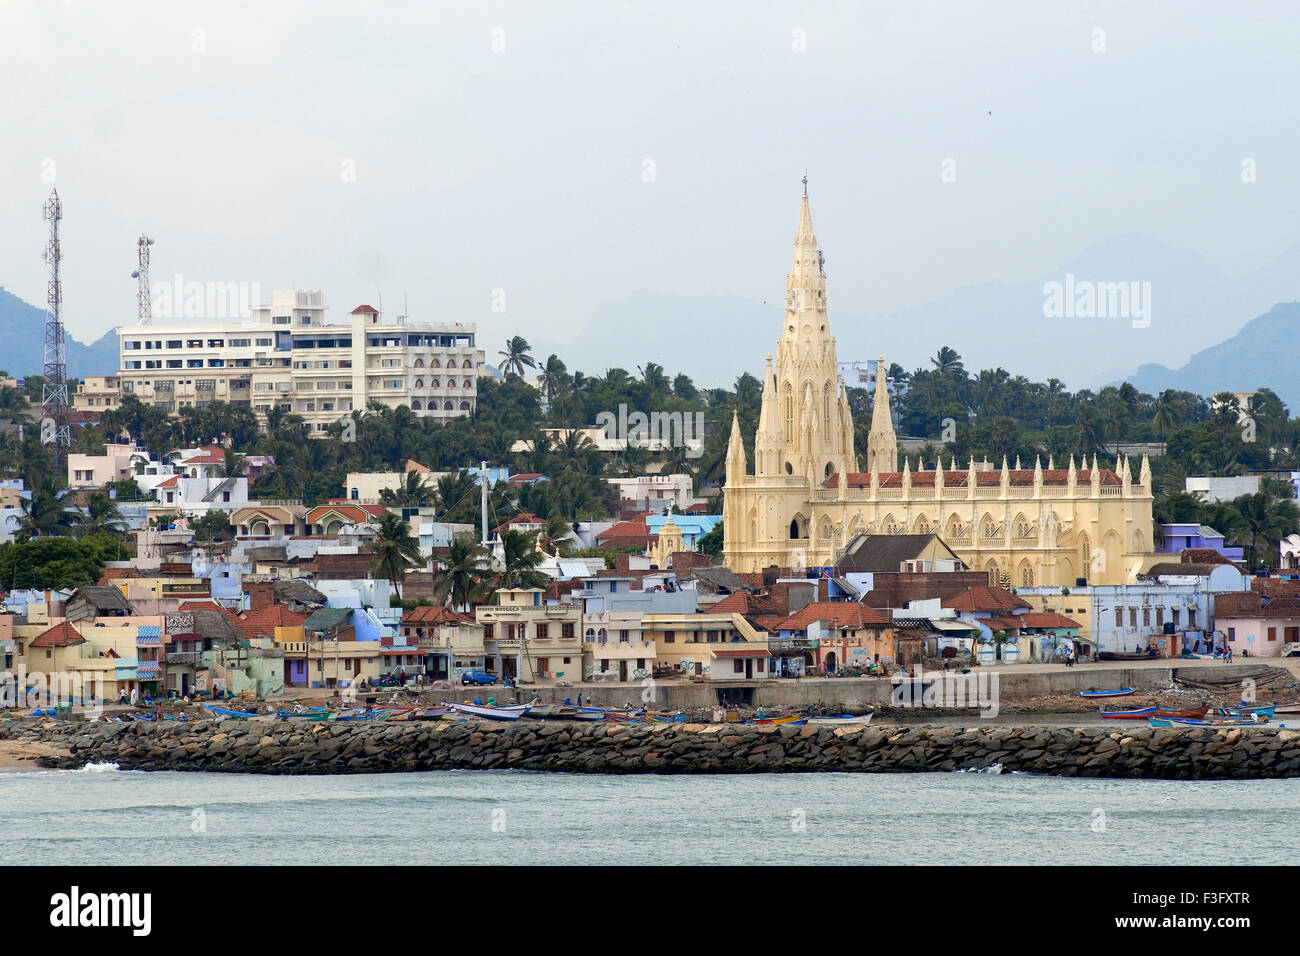 Church of Our Lady of Joy founded by St. Francis Xavier in 1540 ; Kanyakumari ; Tamil Nadu ; India - Stock Image